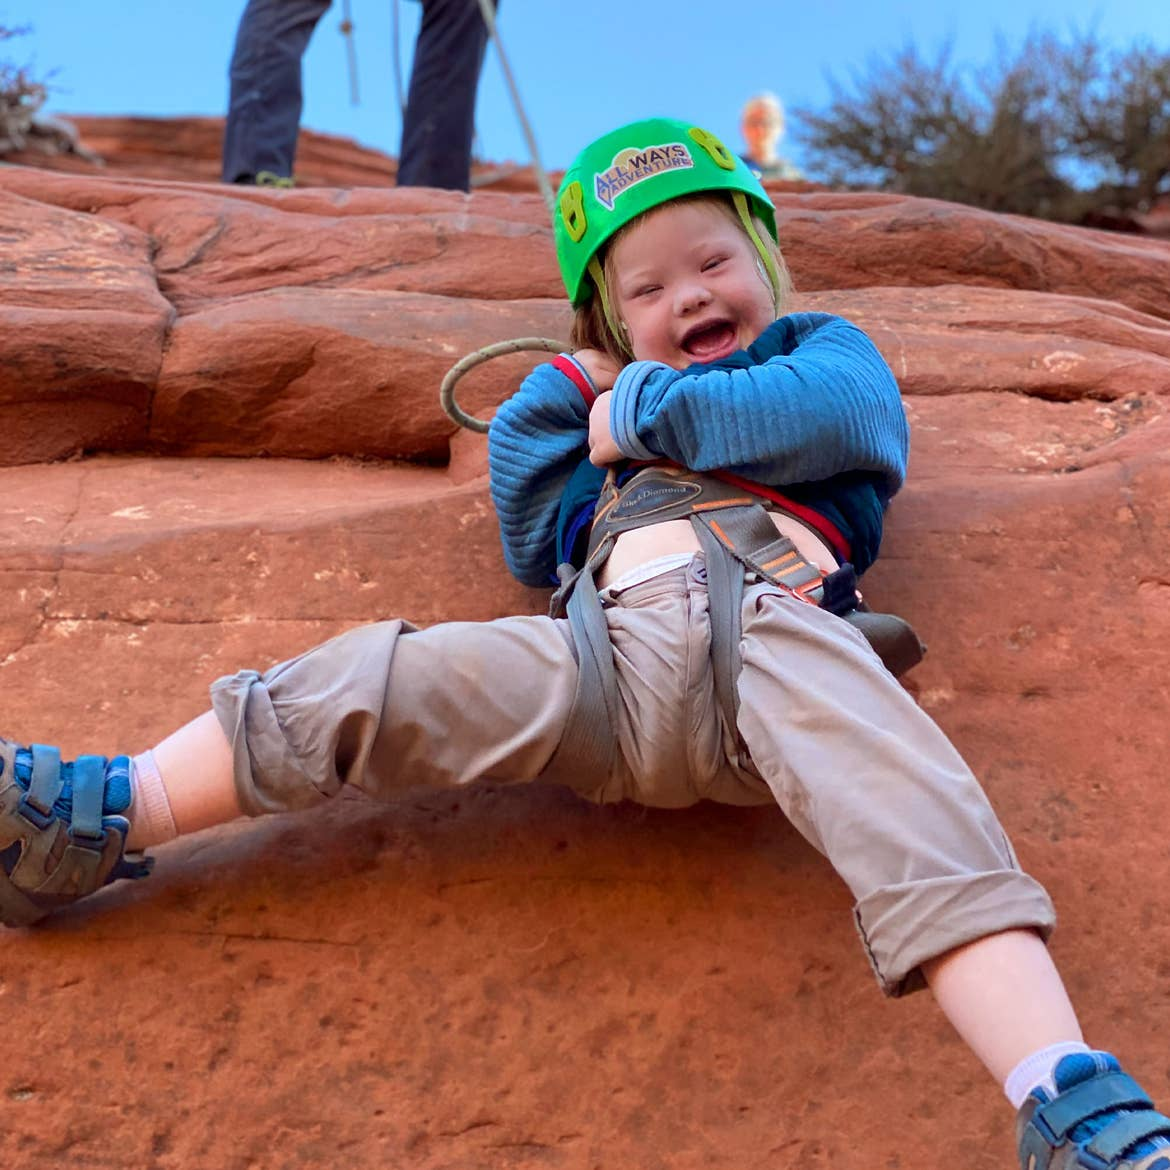 Featured Contributor, Melody Forsyth's daughter, Ruby, wears a blue jacket and green safety helmet and harness while rappelling down an orange rock formation.